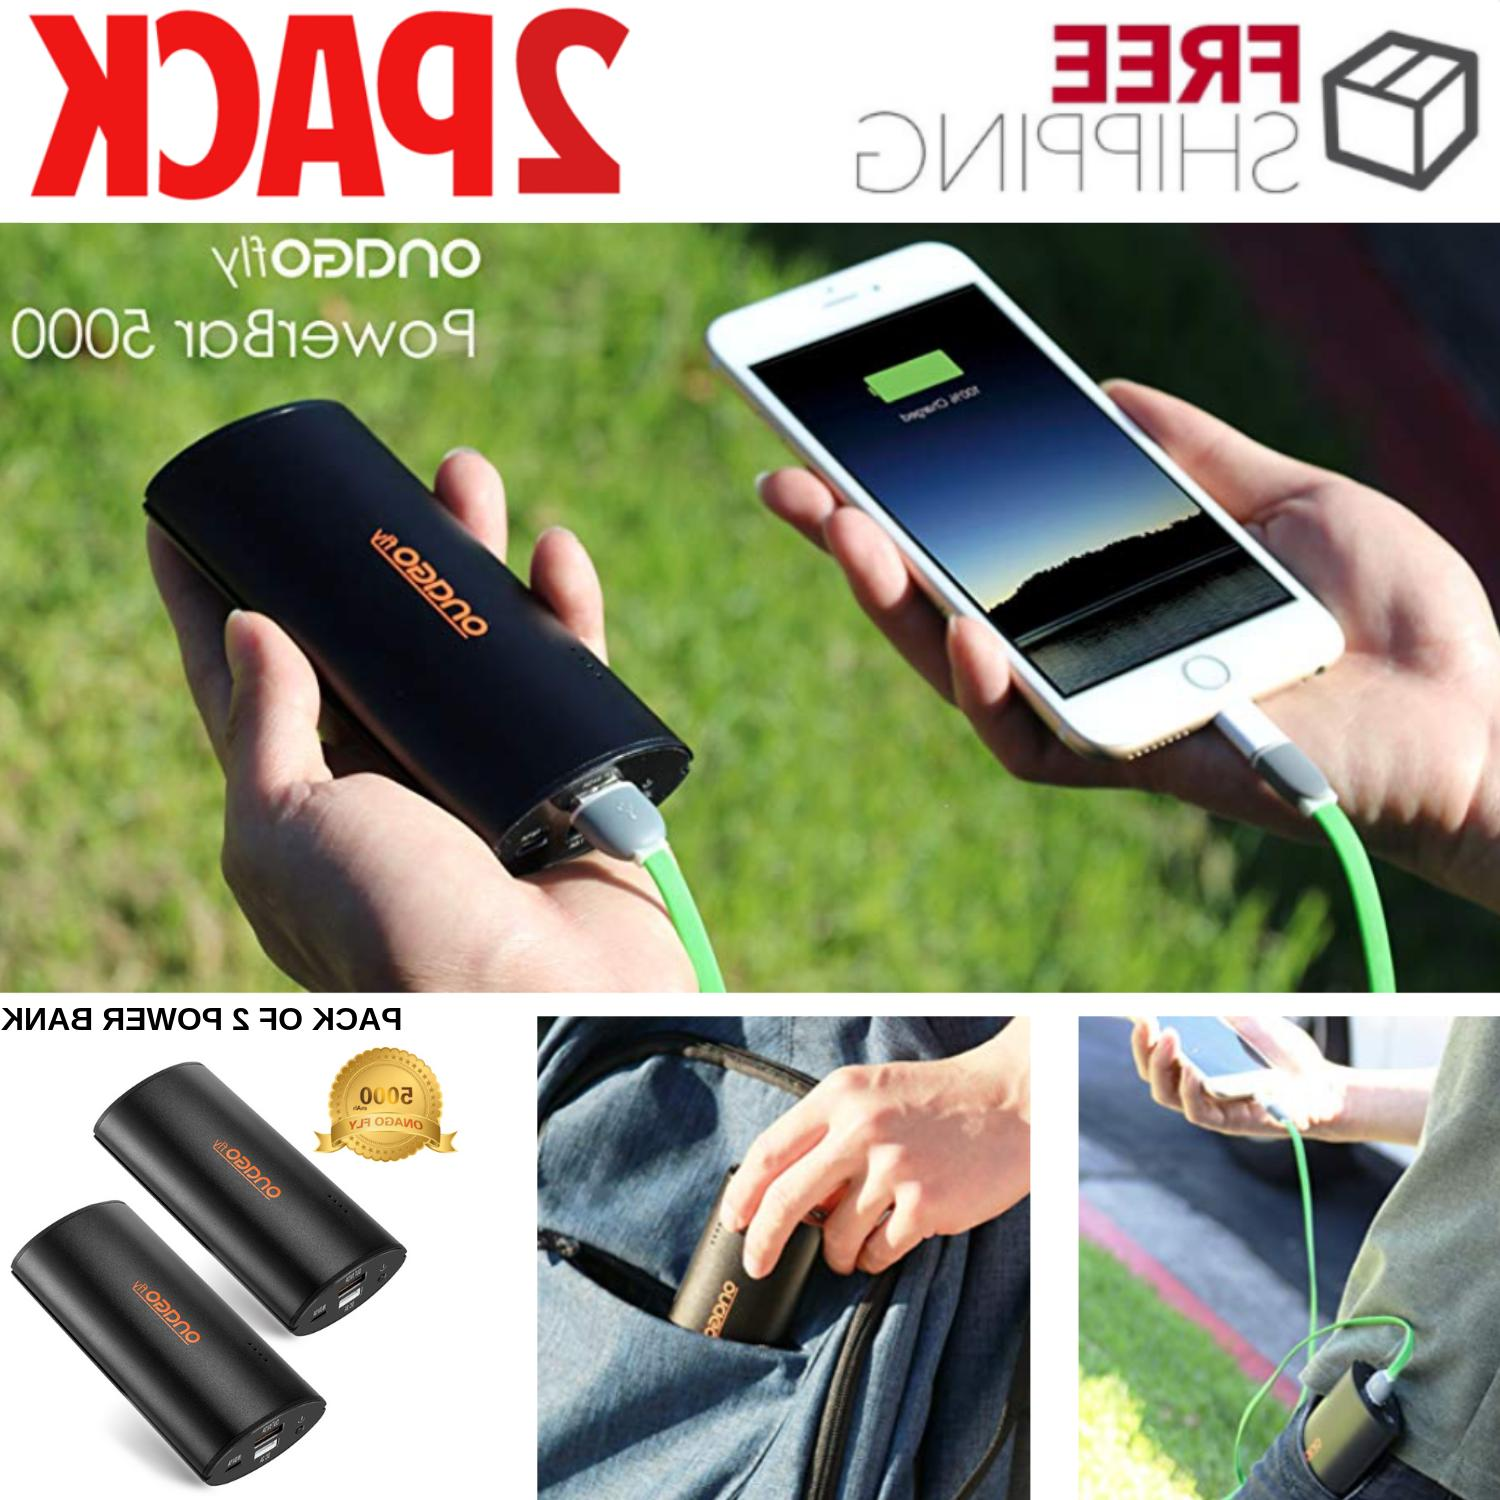 Ultra Compact Portable Charger With High Speed Charging 5000